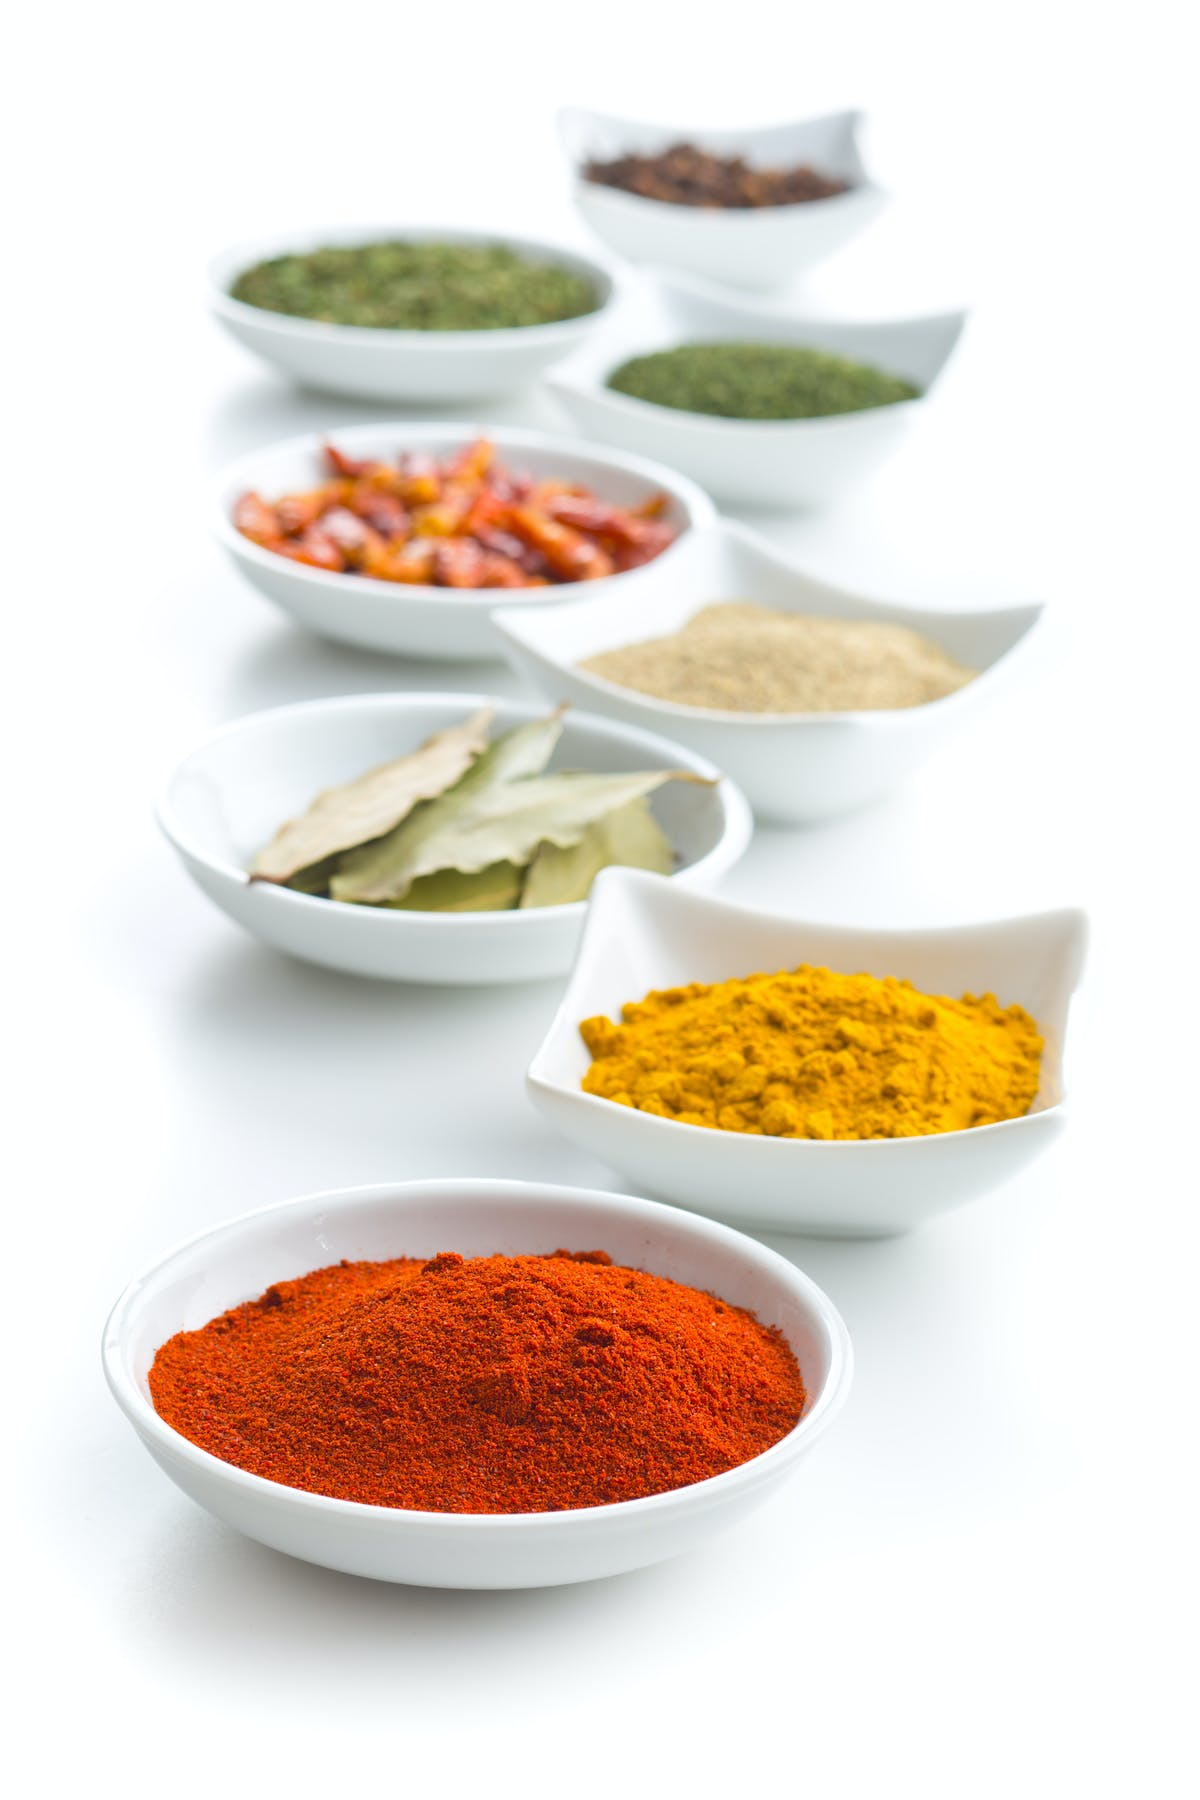 Various dried herbs and spices